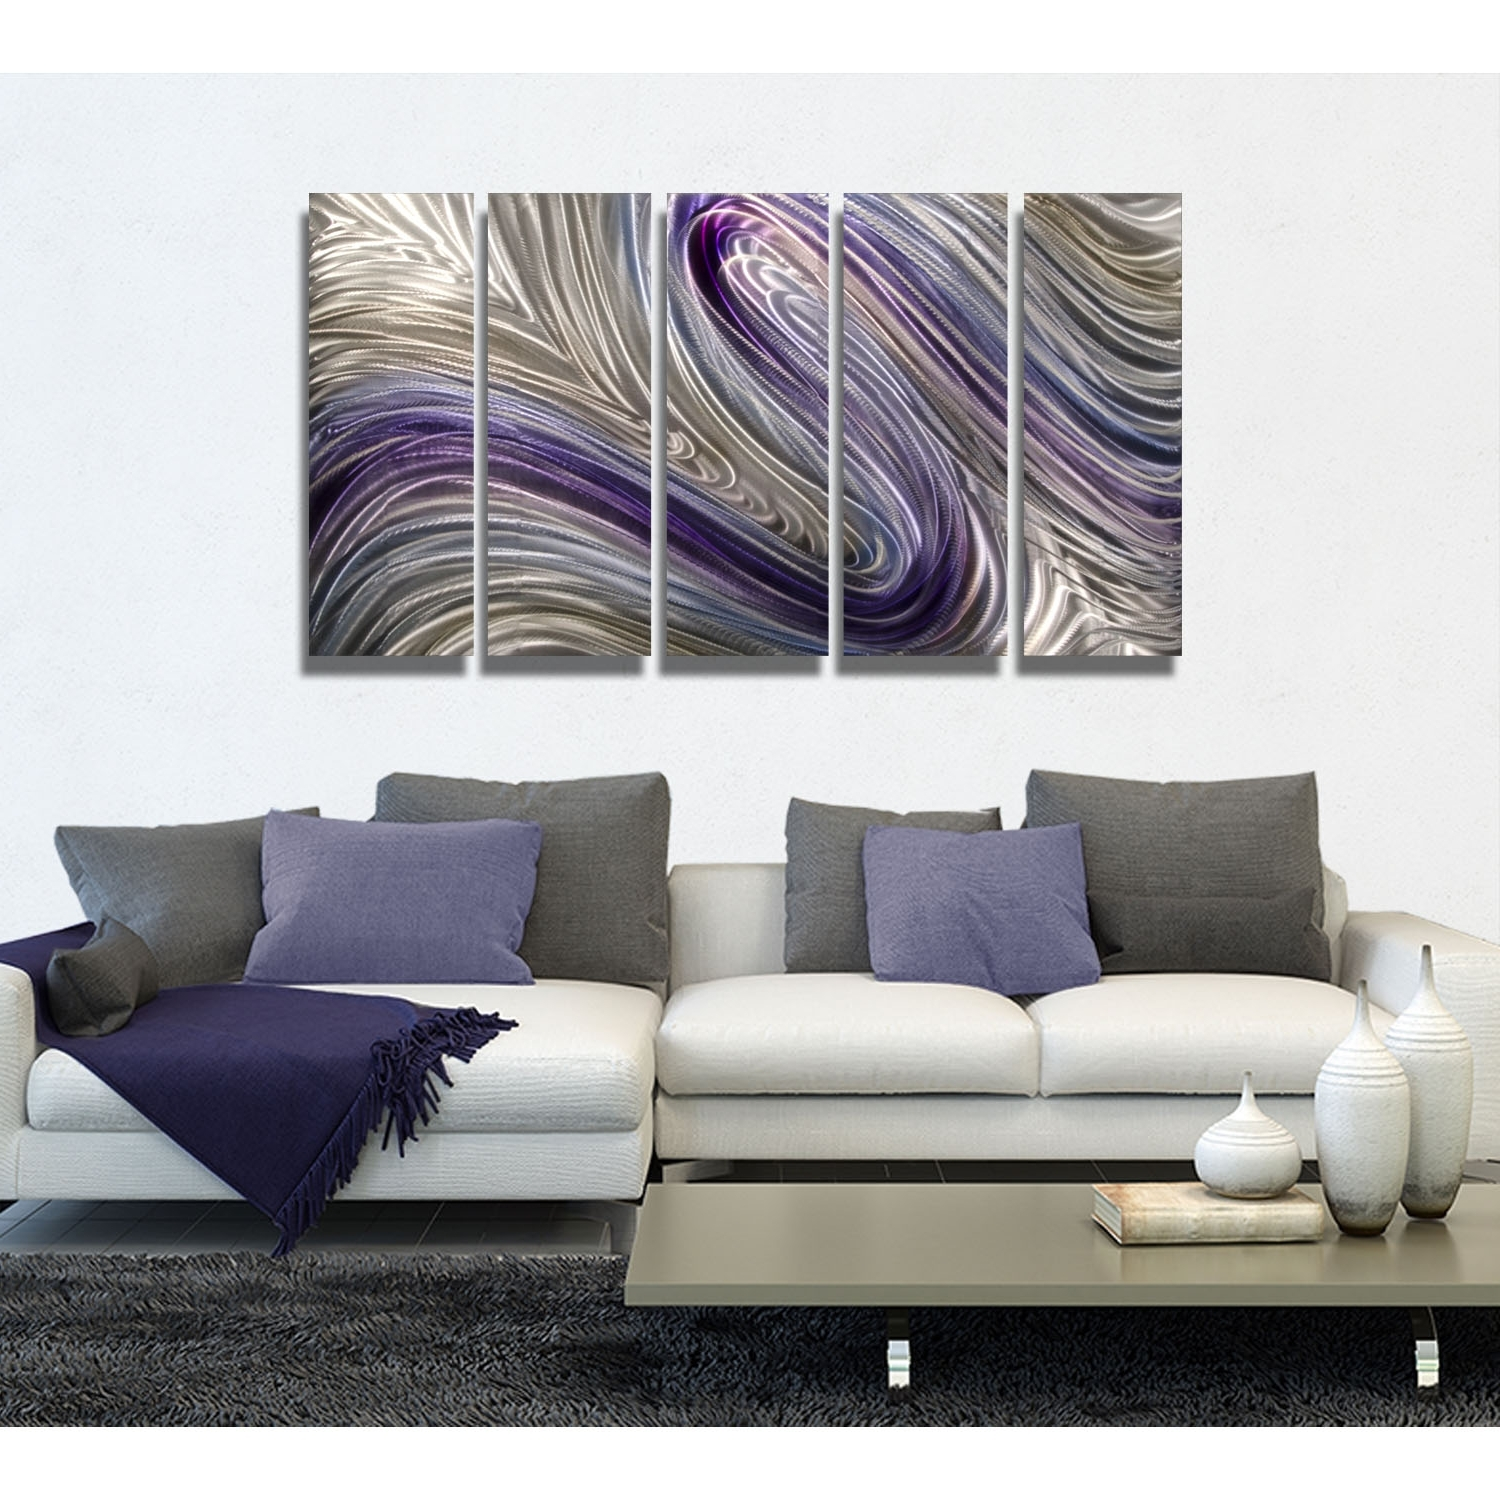 Best And Newest Reverie – Purple, Silver And Gold Metal Wall Art – 5 Panel Wall With Regard To Purple And Grey Wall Art (View 5 of 20)